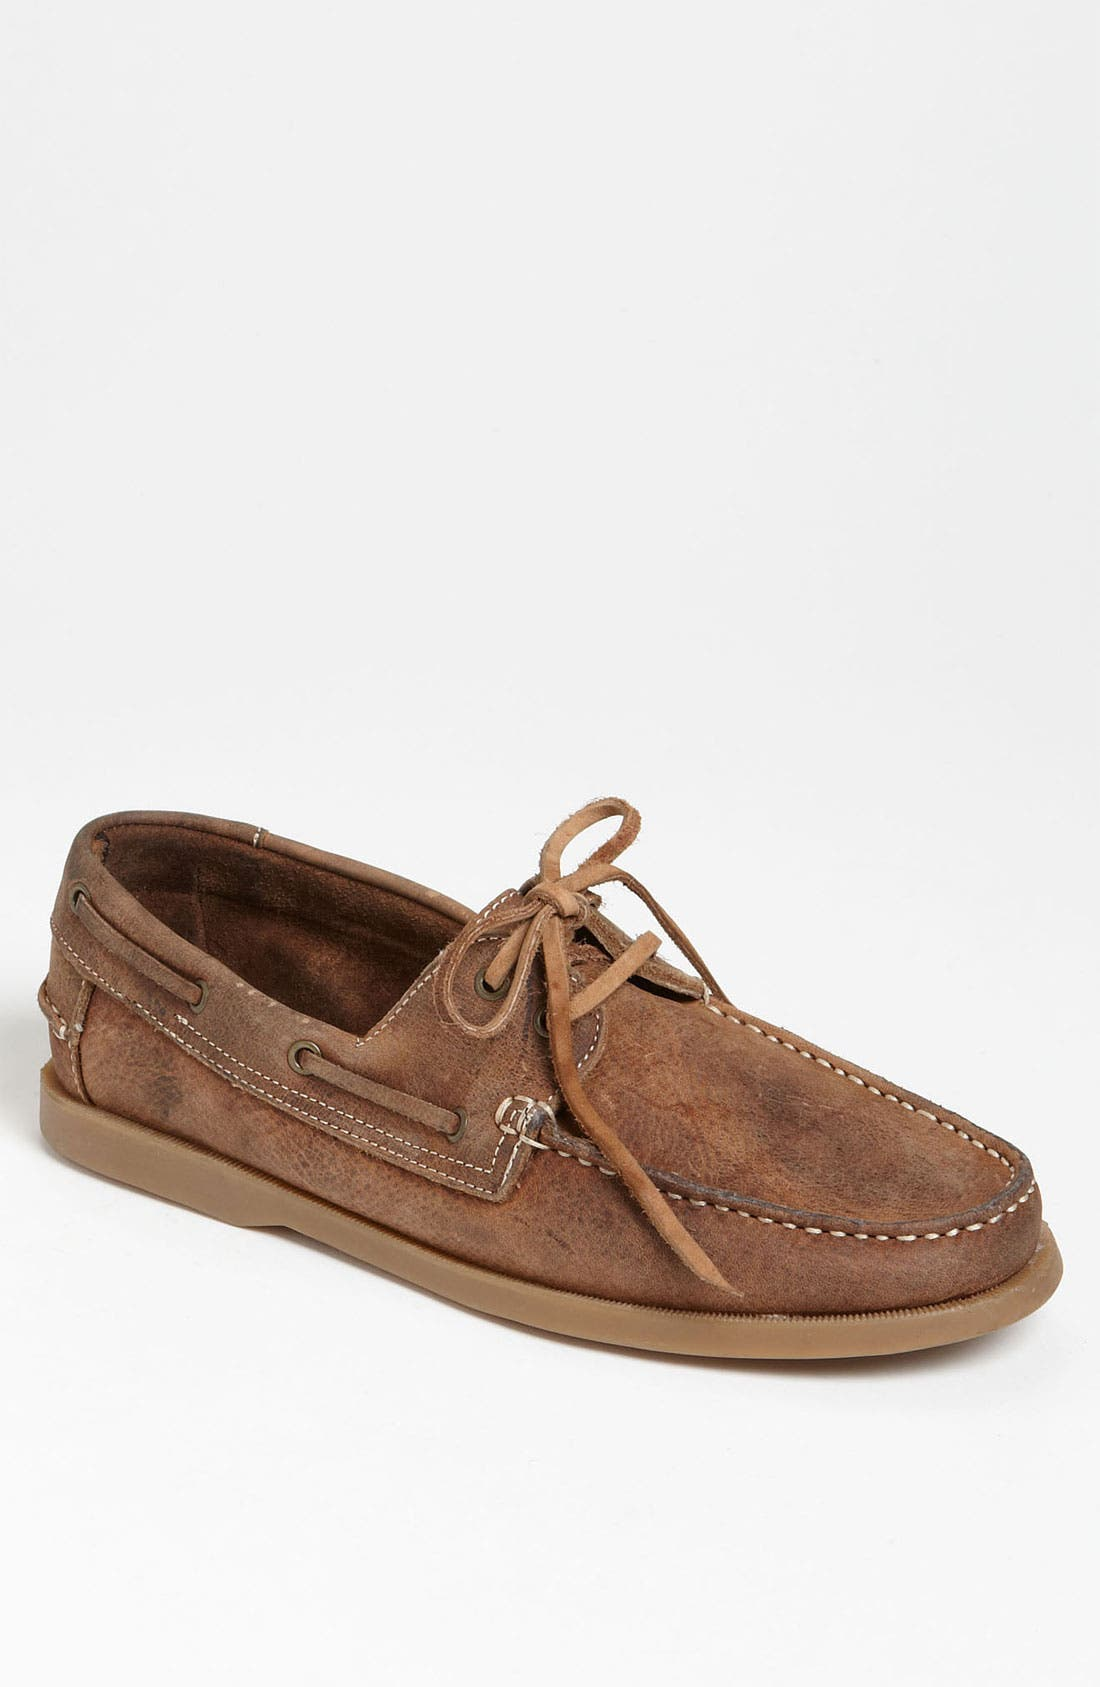 Main Image - Bed Stu 'Frank' Boat Shoe